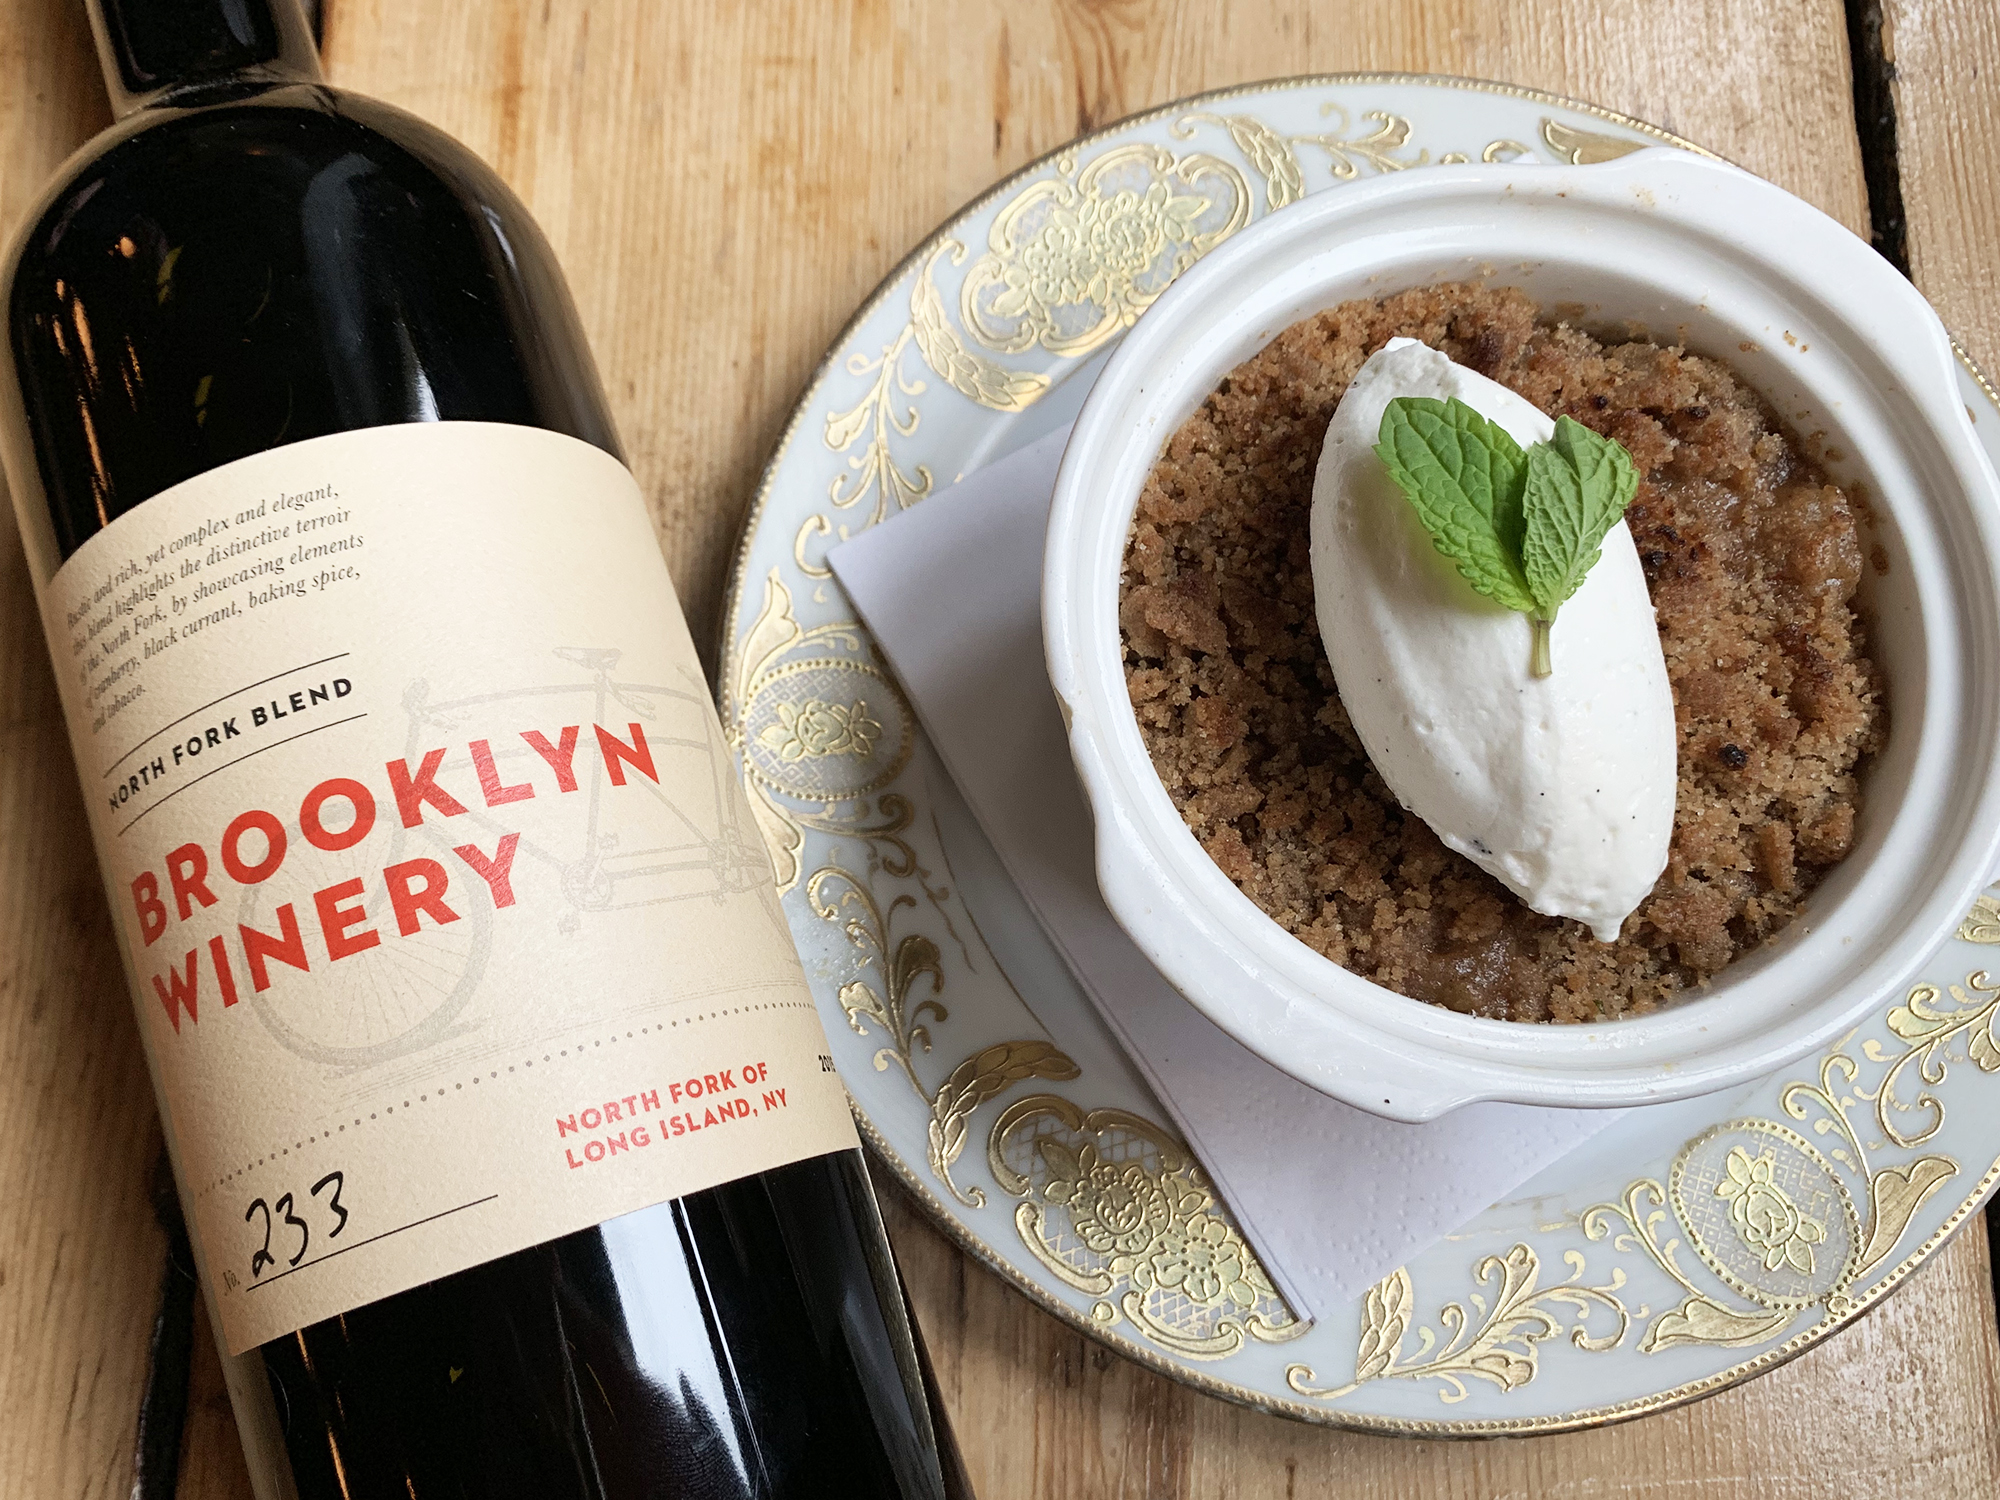 brooklyn winery apple crisp apple food